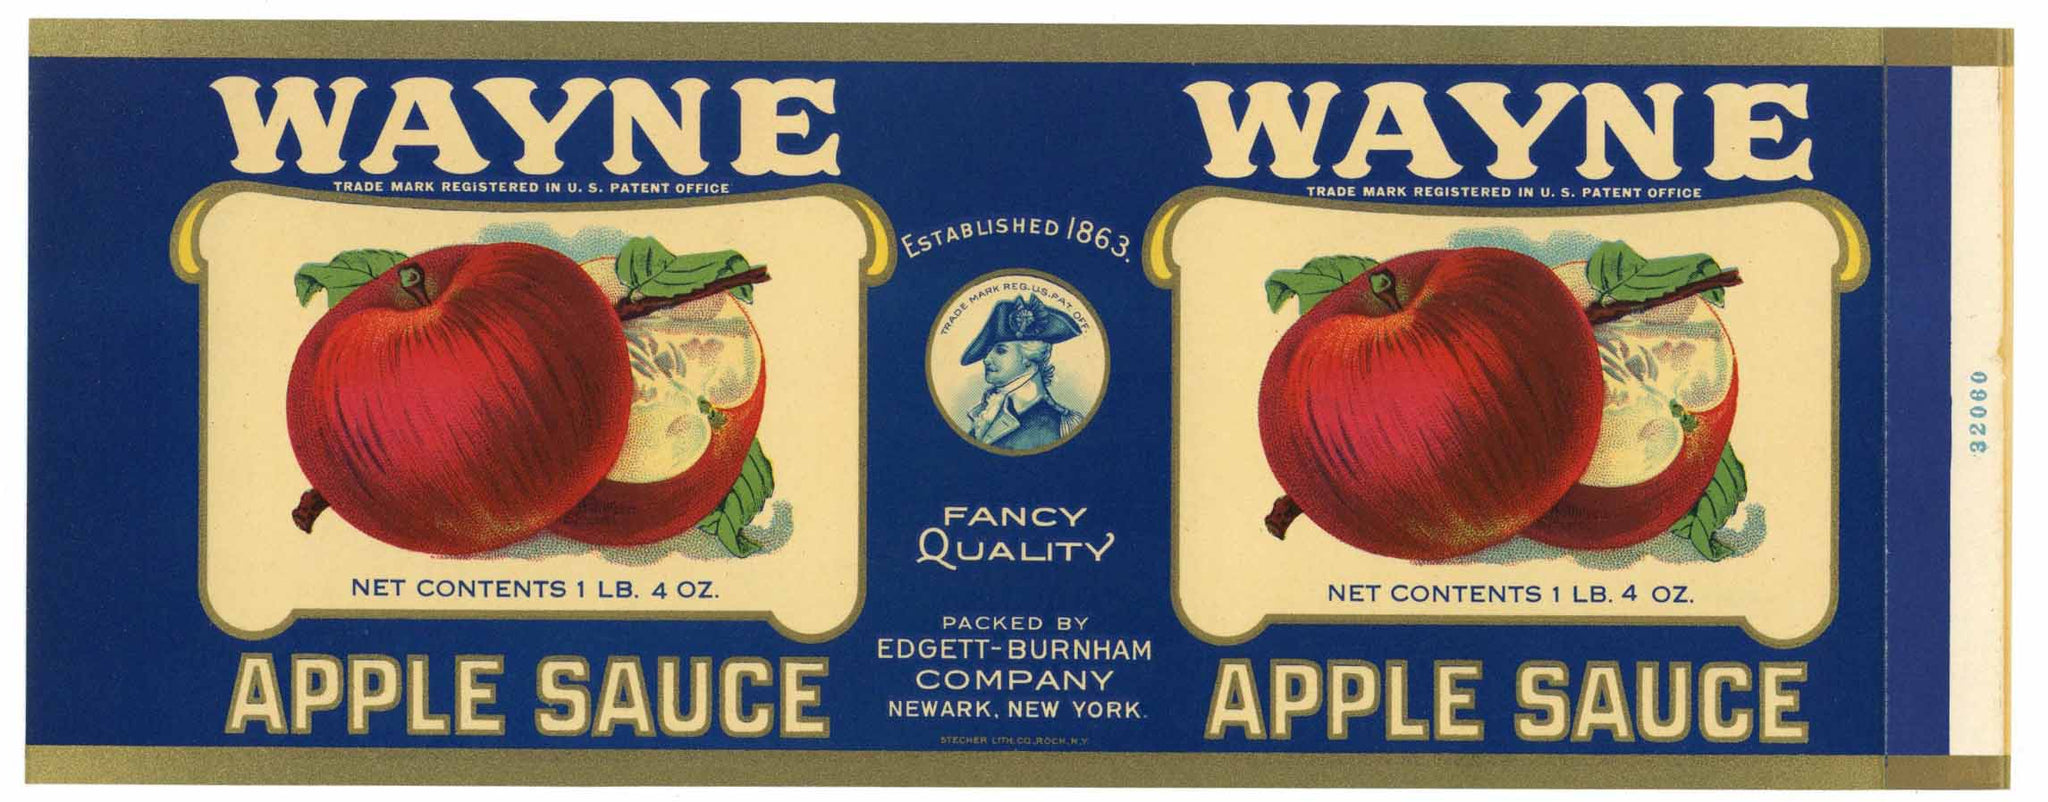 Wayne Brand Vintage Newark New York Apple Sauce Can Label